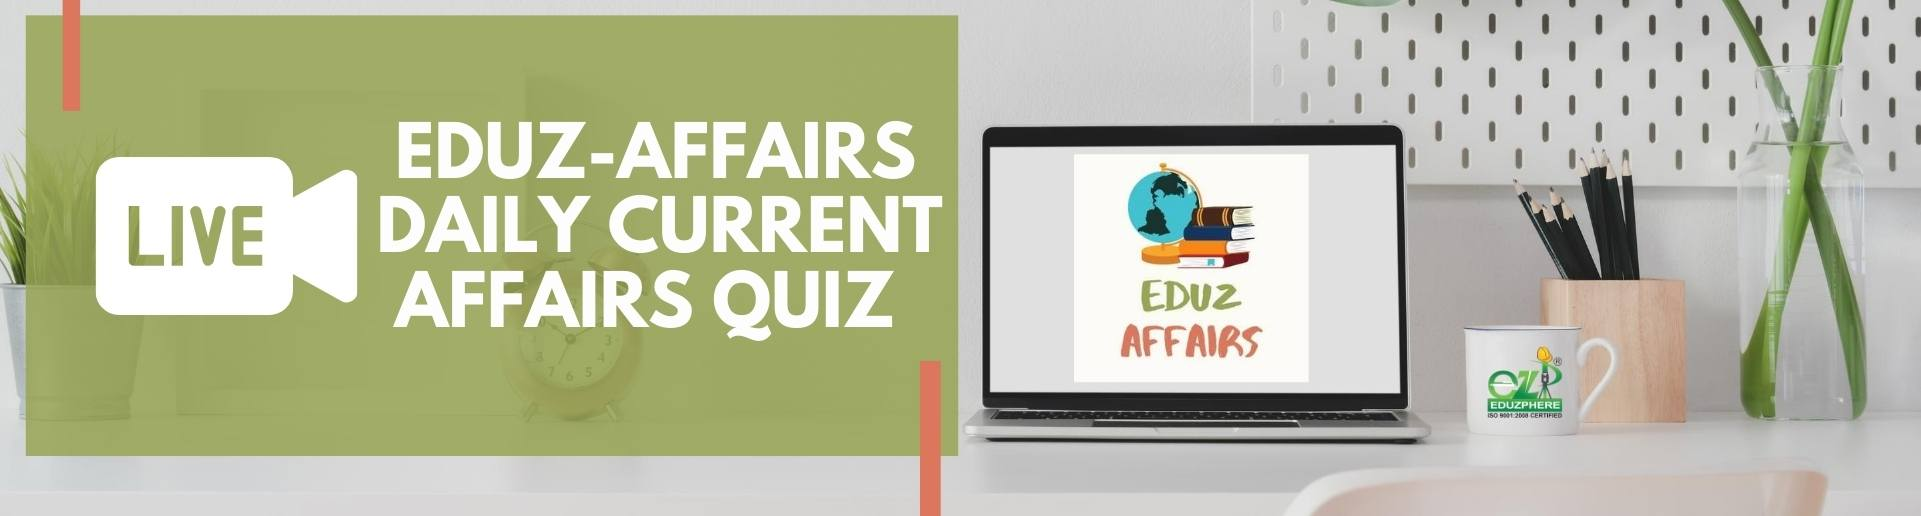 Eduz-Affairs Daily Current Affairs Quiz banner